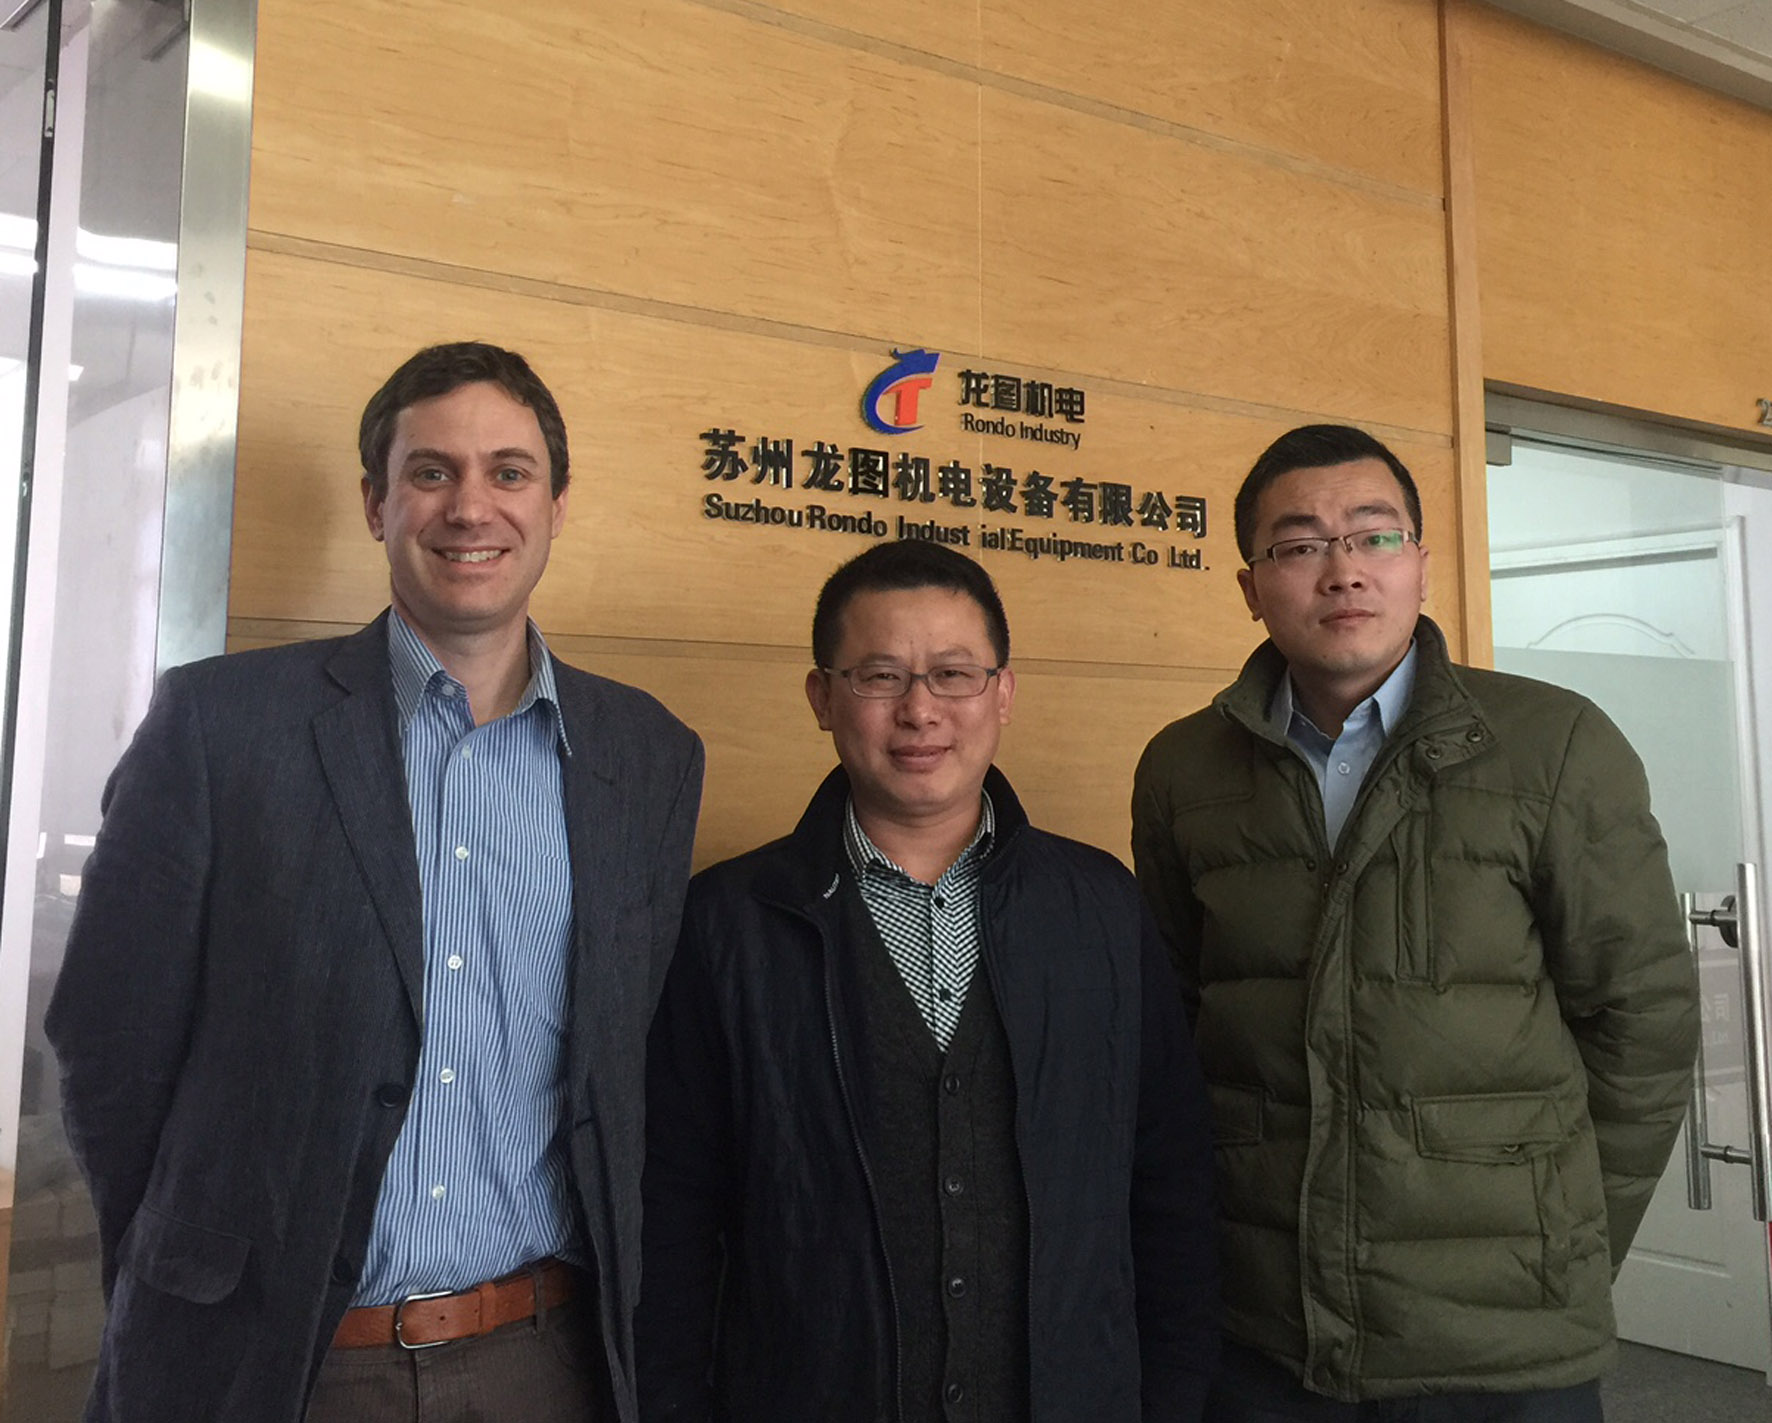 Filtermist Managing Director James Stansfield pictured with colleagues in China